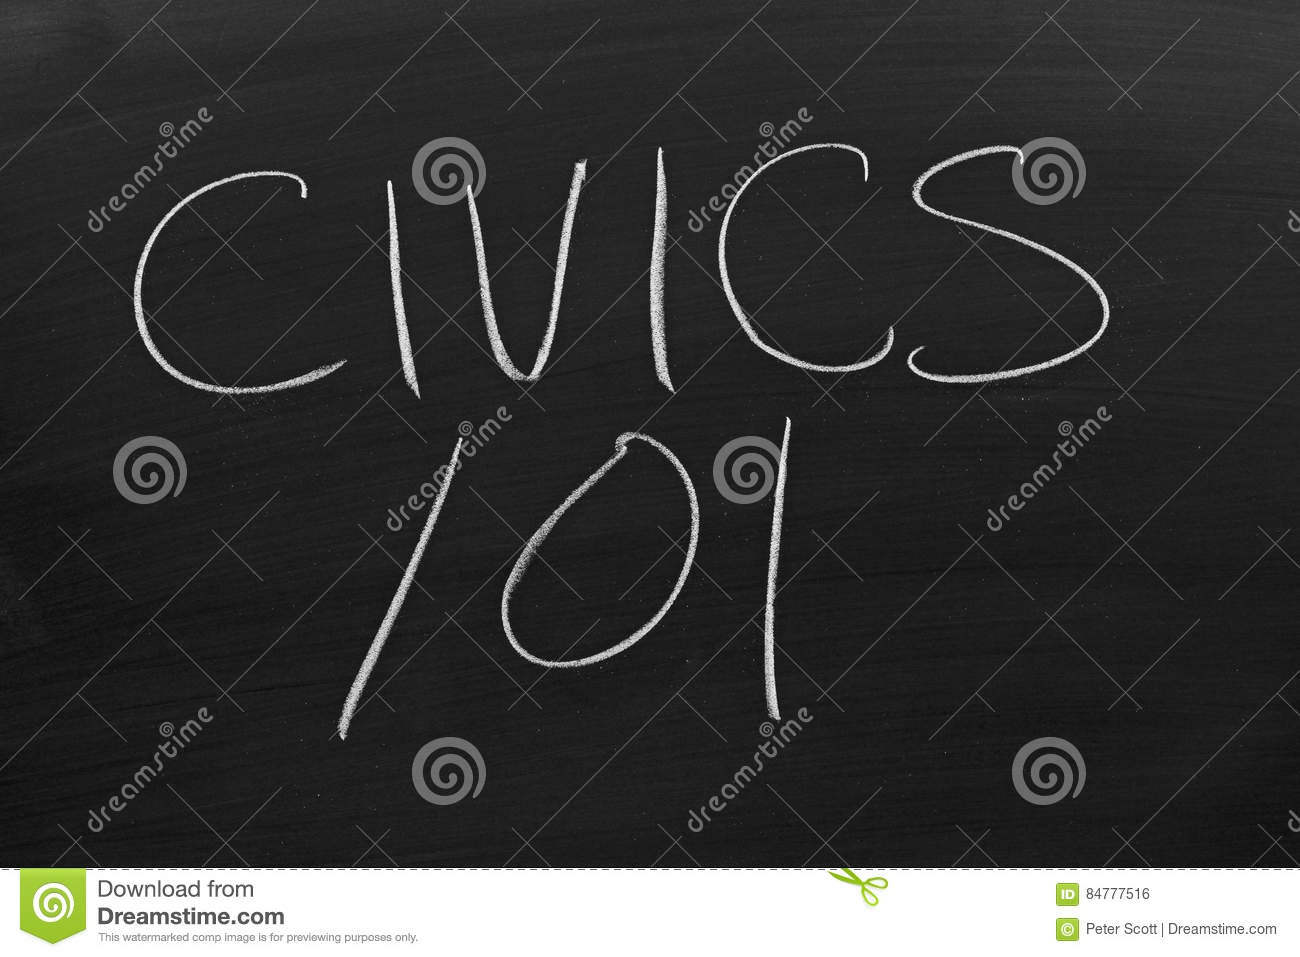 Civics 101 On A Blackboard